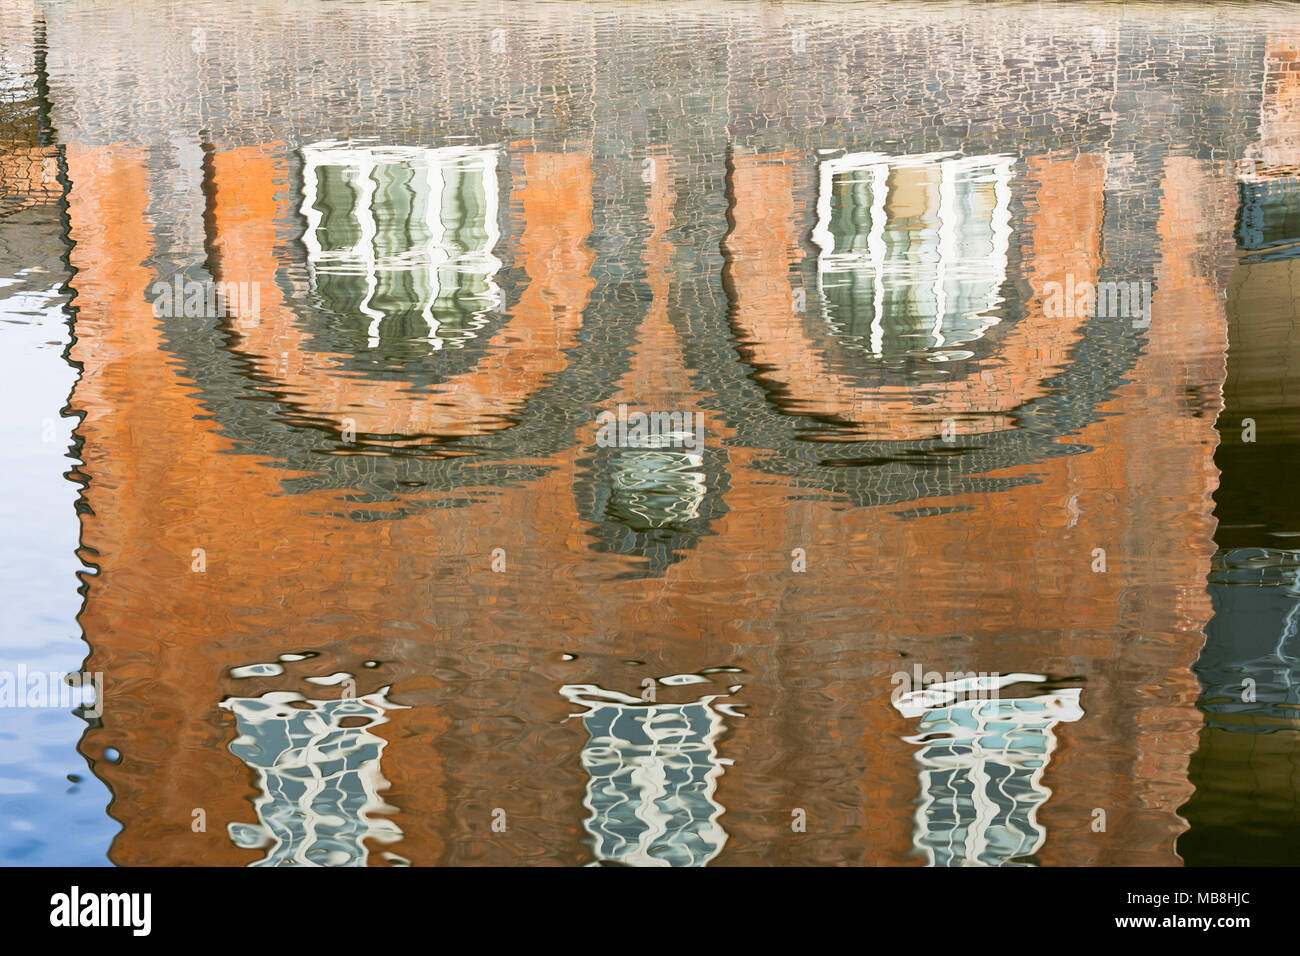 Abstract water reflections of an old red brick building in Worcester, UK - Stock Image